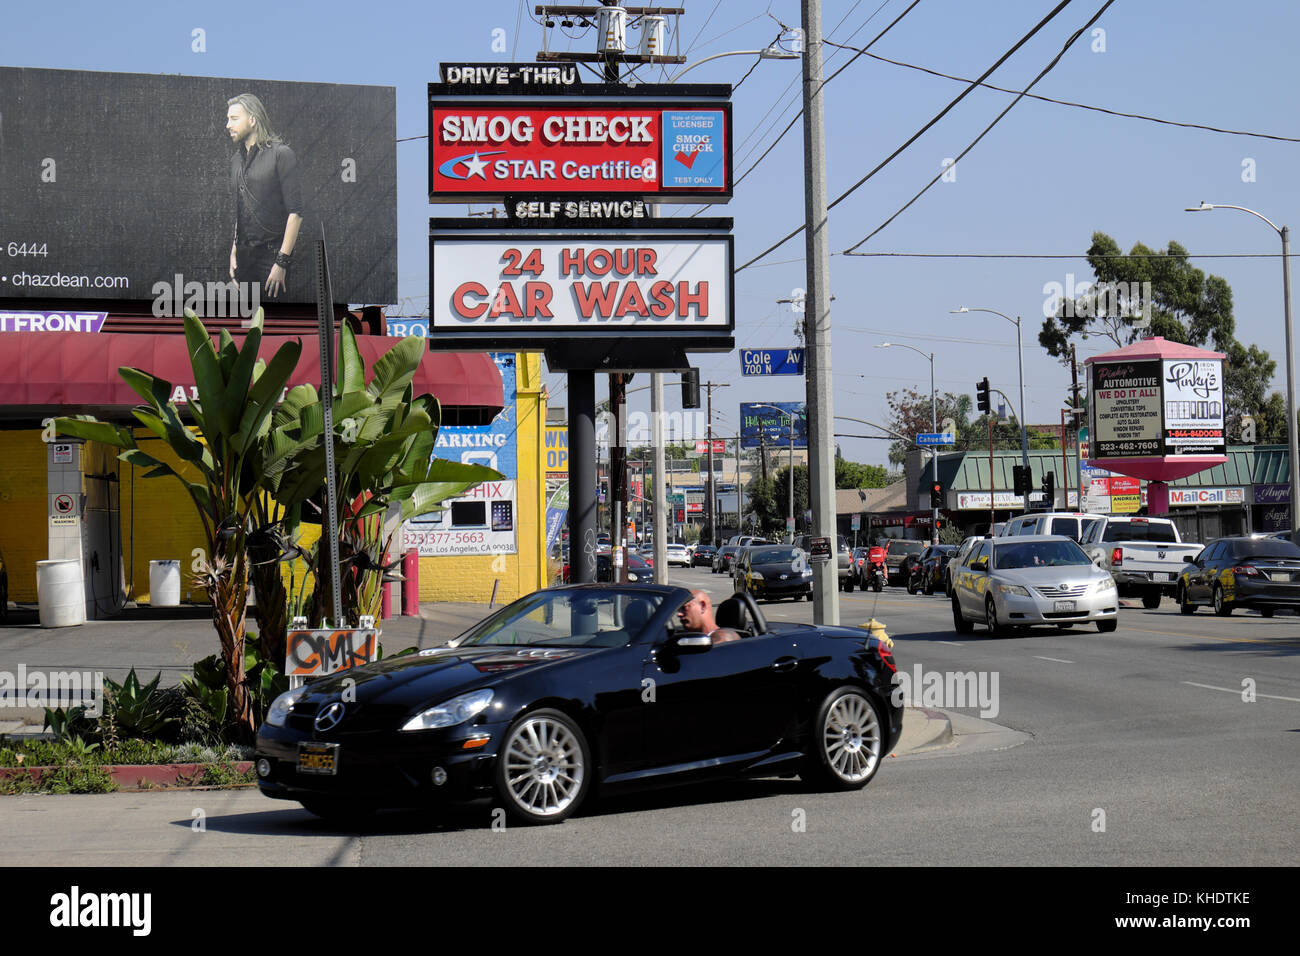 Car wash signs imgenes de stock car wash signs fotos de stock alamy coche convertible y trfico en melrose avenue cerca de cole ave y el smog check 24 solutioingenieria Images